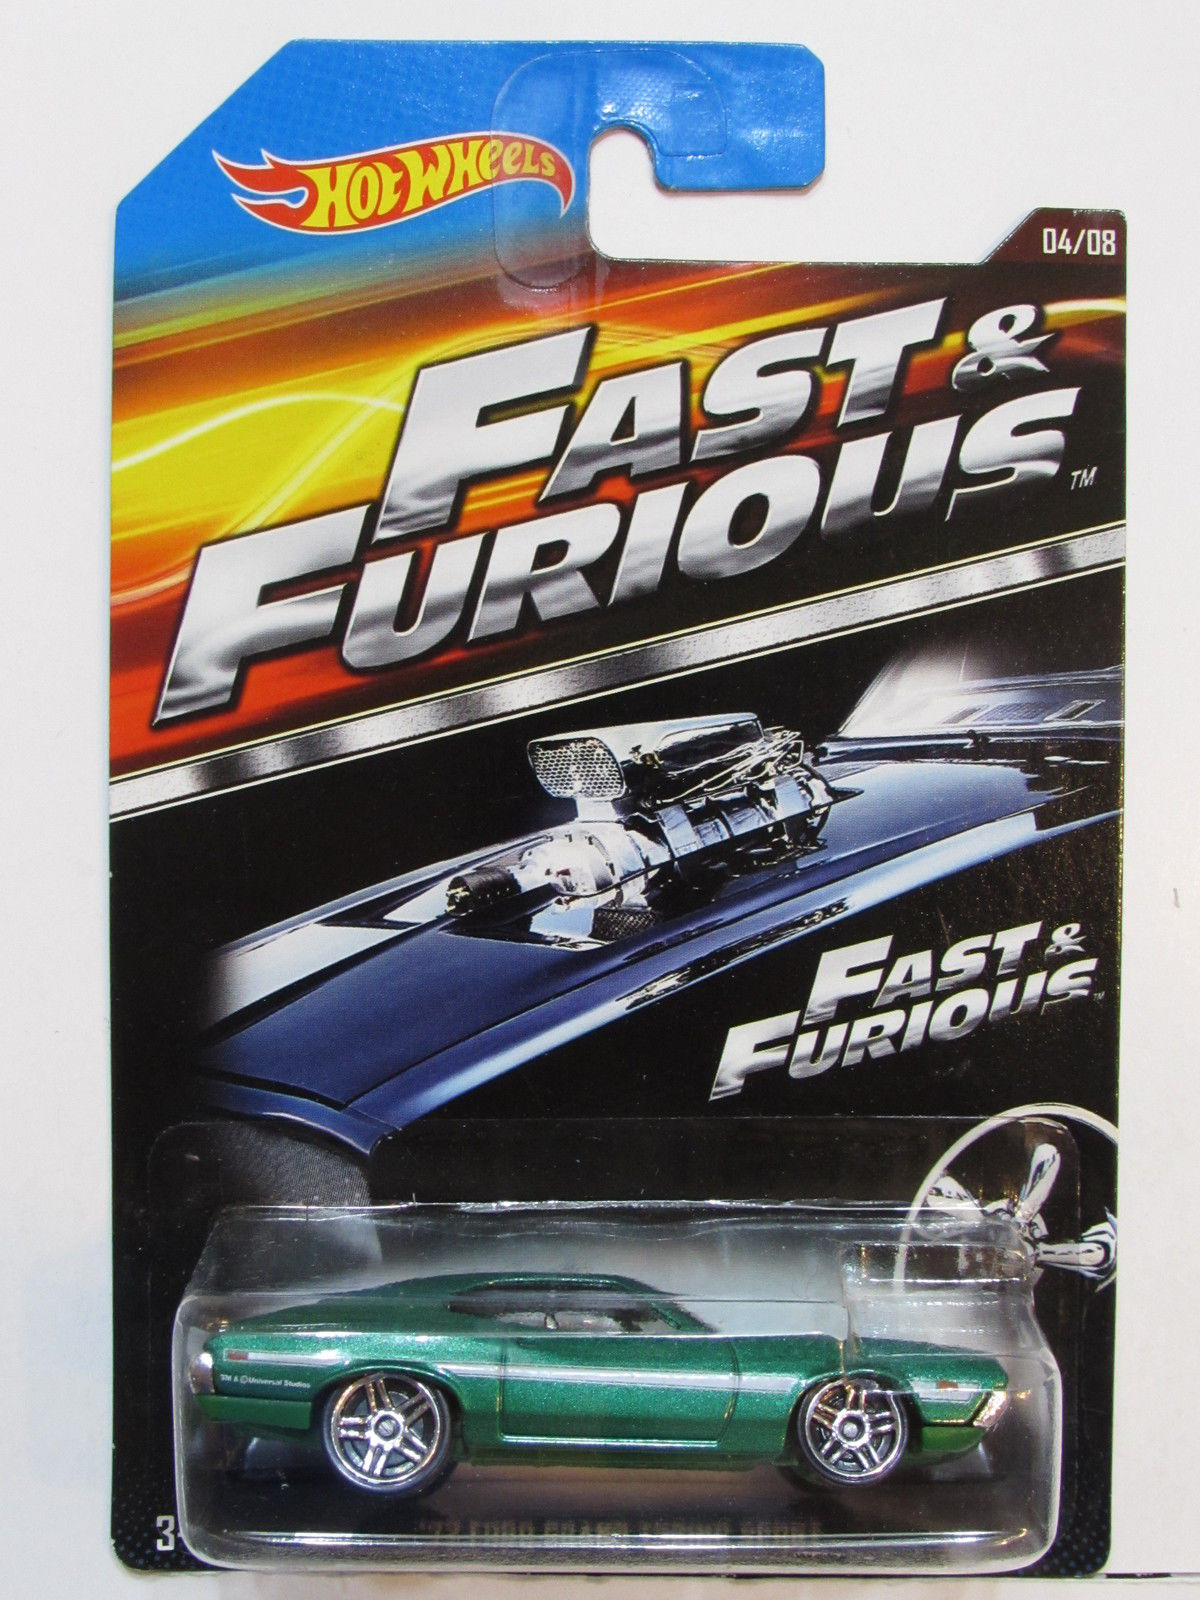 HOT WHEELS 2015 FAST & FURIOUS #04/08 '72 FORD GRAND TORINO SPORT